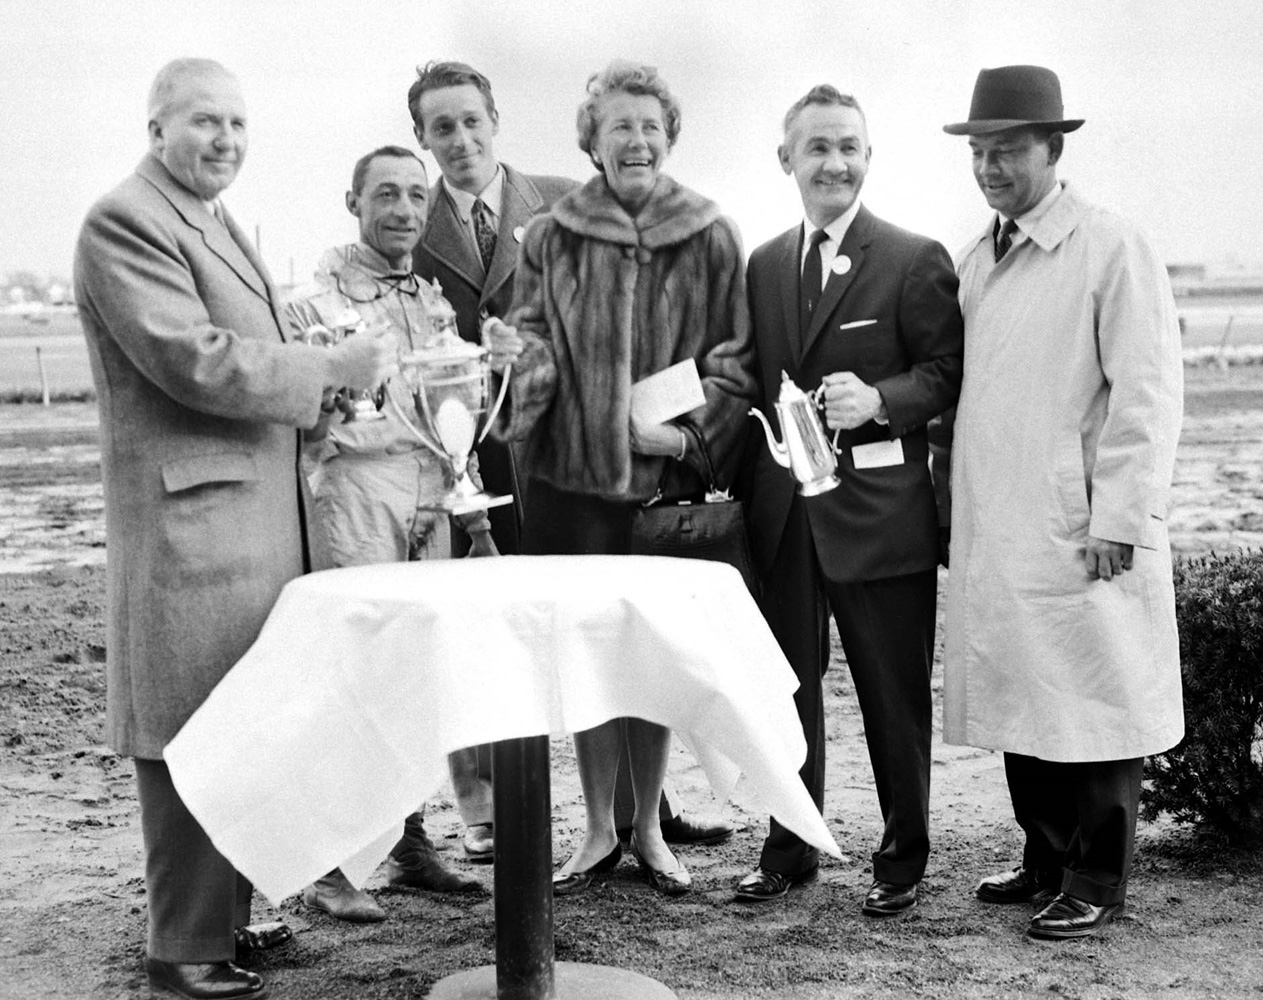 John Hanes, Eddie Arcaro, Simon Wetherby, Allaire du Pont, and Carl Hanford at the trophy presentation for Kelso's 1960 Jockey Club Gold Cup win (Keeneland Library Morgan Collection)